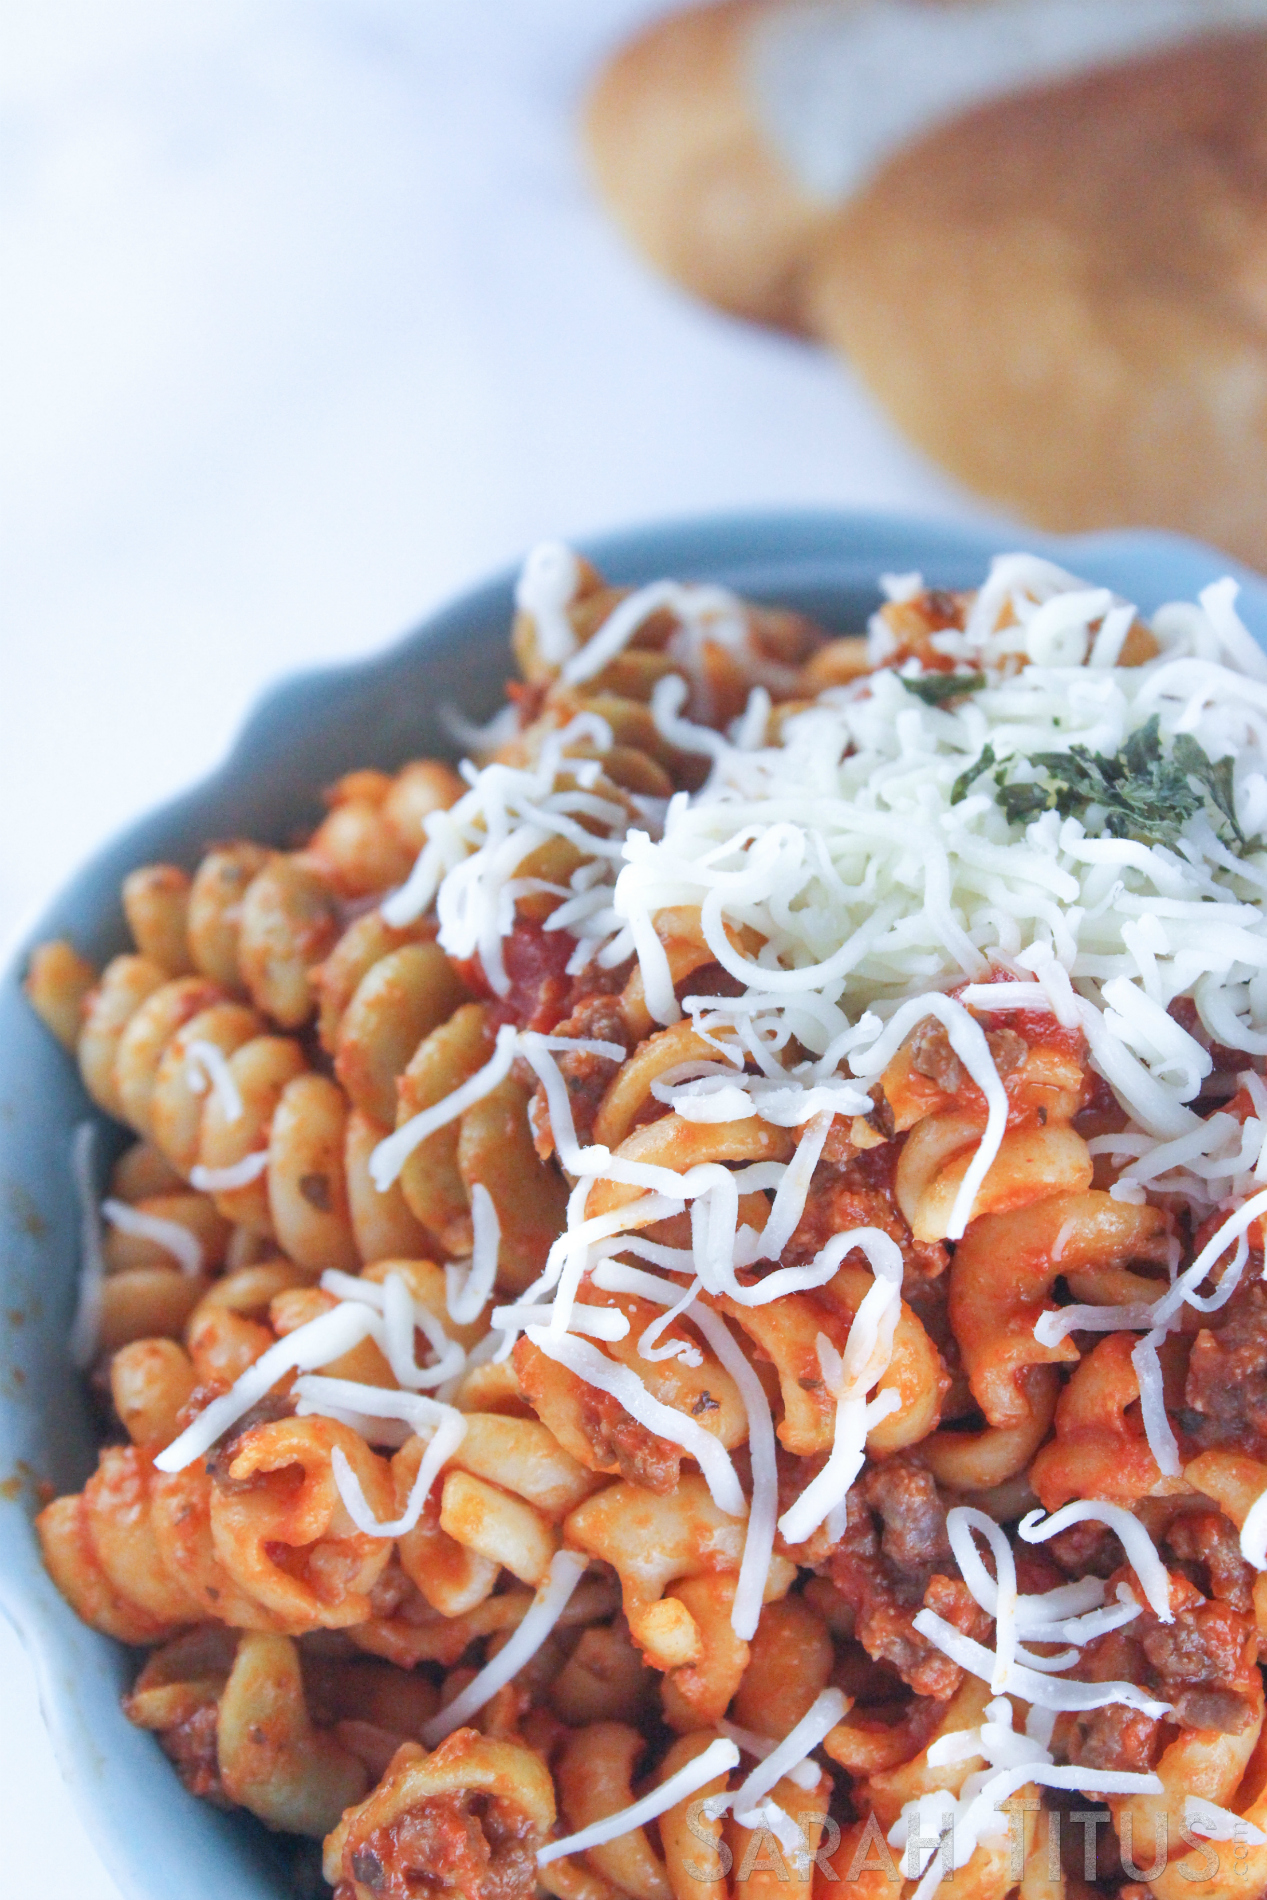 Spicy pasta with Parmesan cheese and a crusty loaf of bread